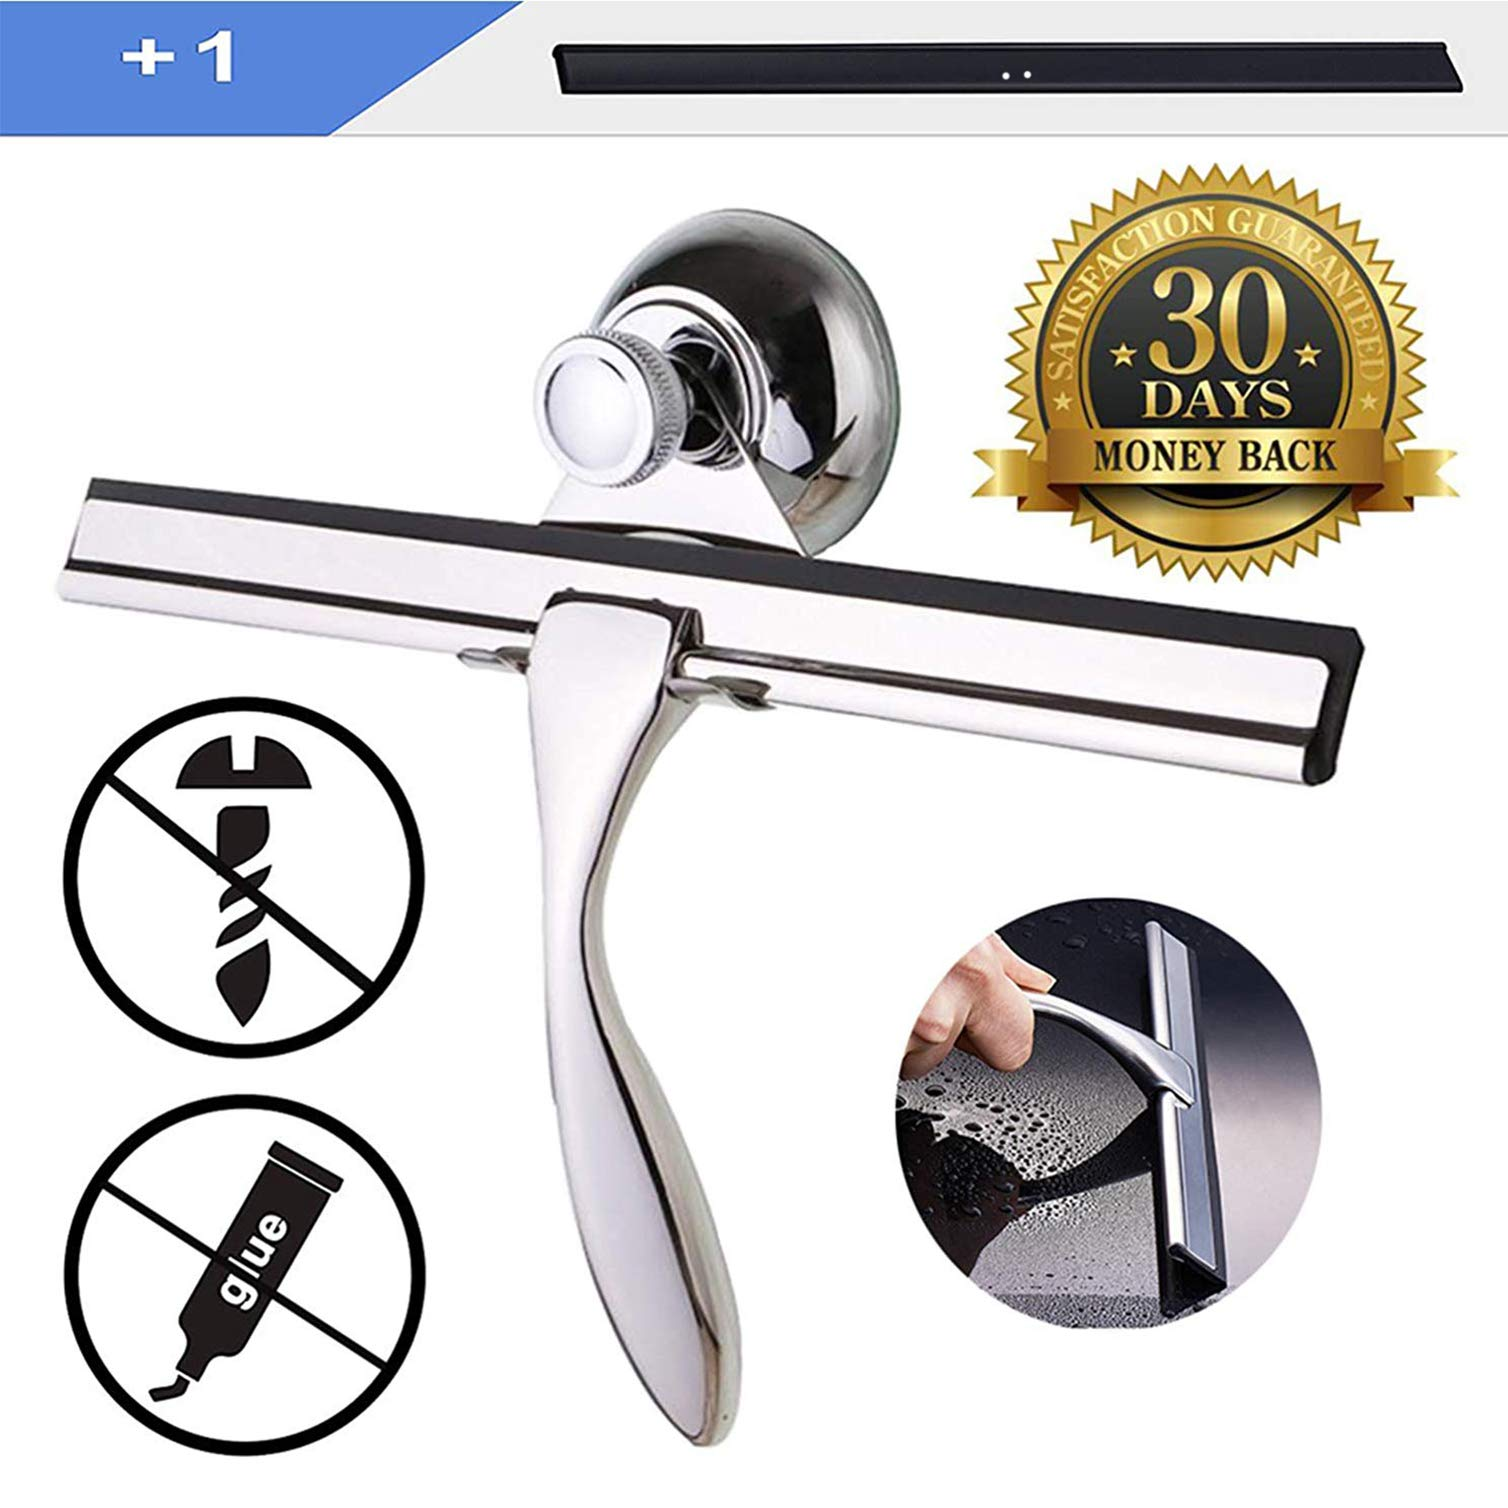 FCXZSSY Shower Squeegee,Bathroom Squeegee Shower Doors Glass Squeegee +1 Replacement Rubber Blade,Stainless Steel squeegee shower cleaner for Glass Cleaning with Suction Cup Hooks (Metal color)